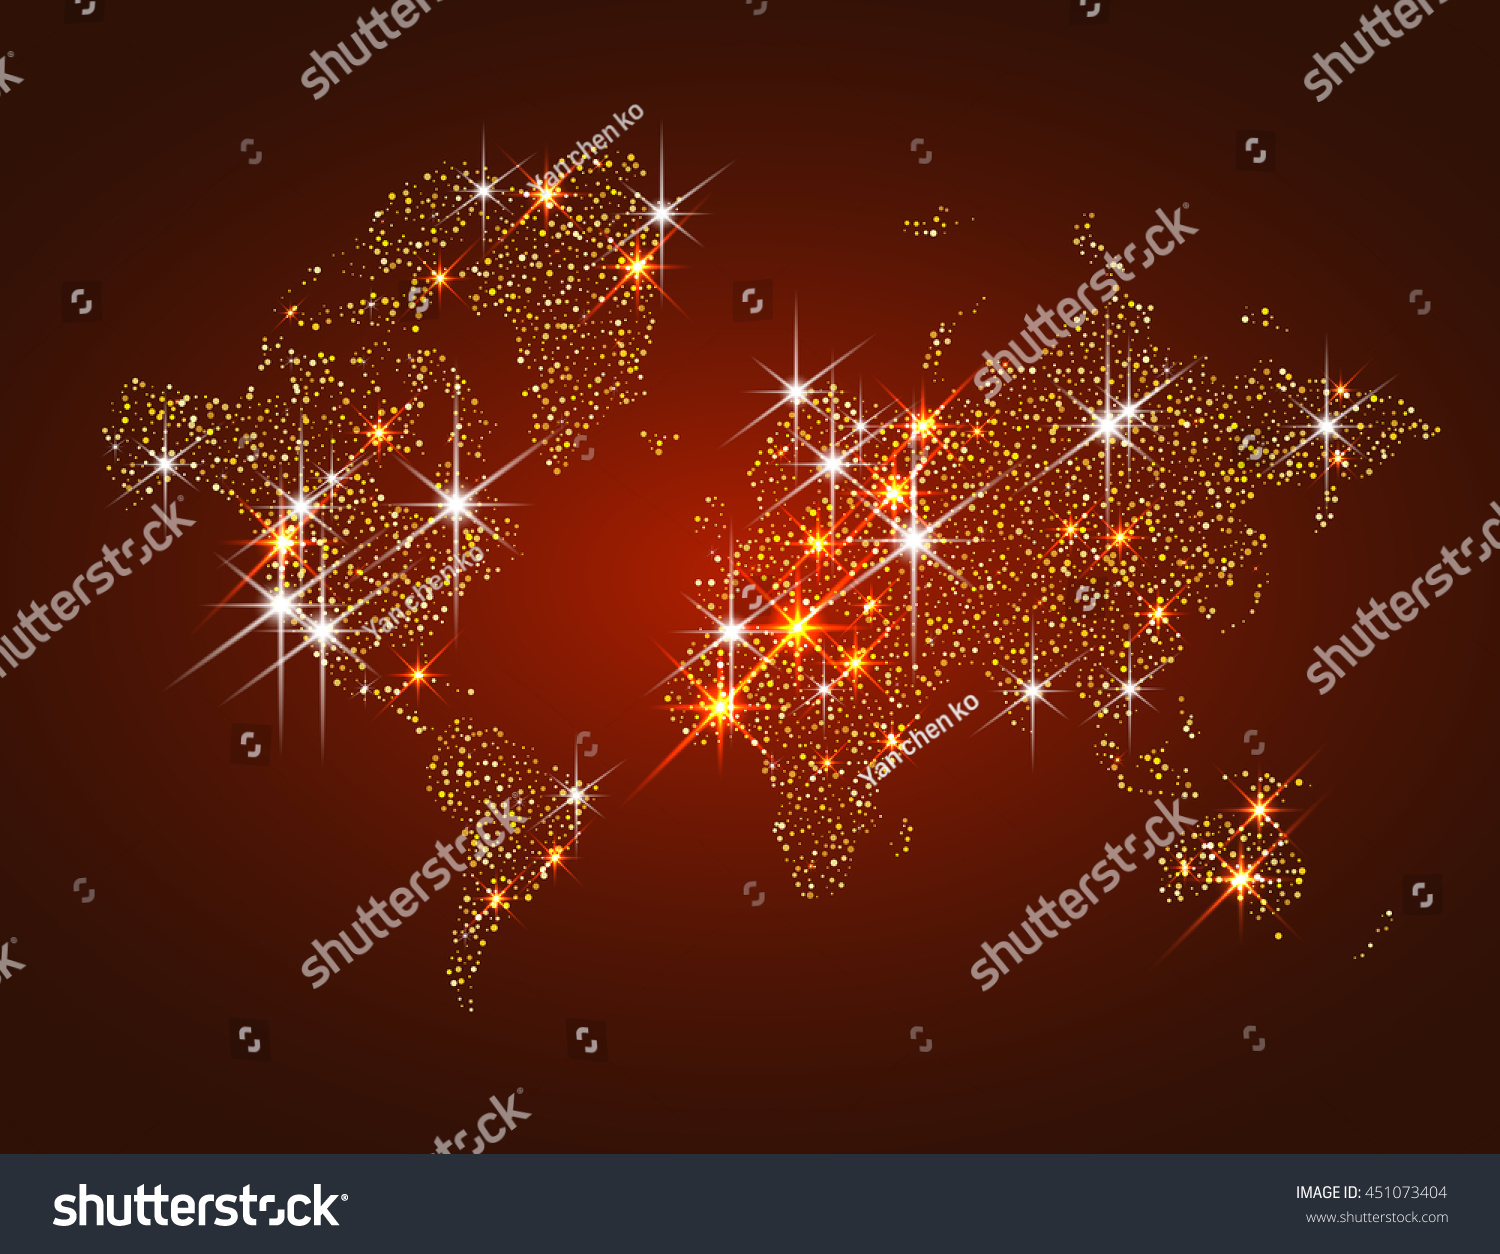 World Map Filled With Gold Glitter And Sparkles, With Plenty Of Space To  Insert Your